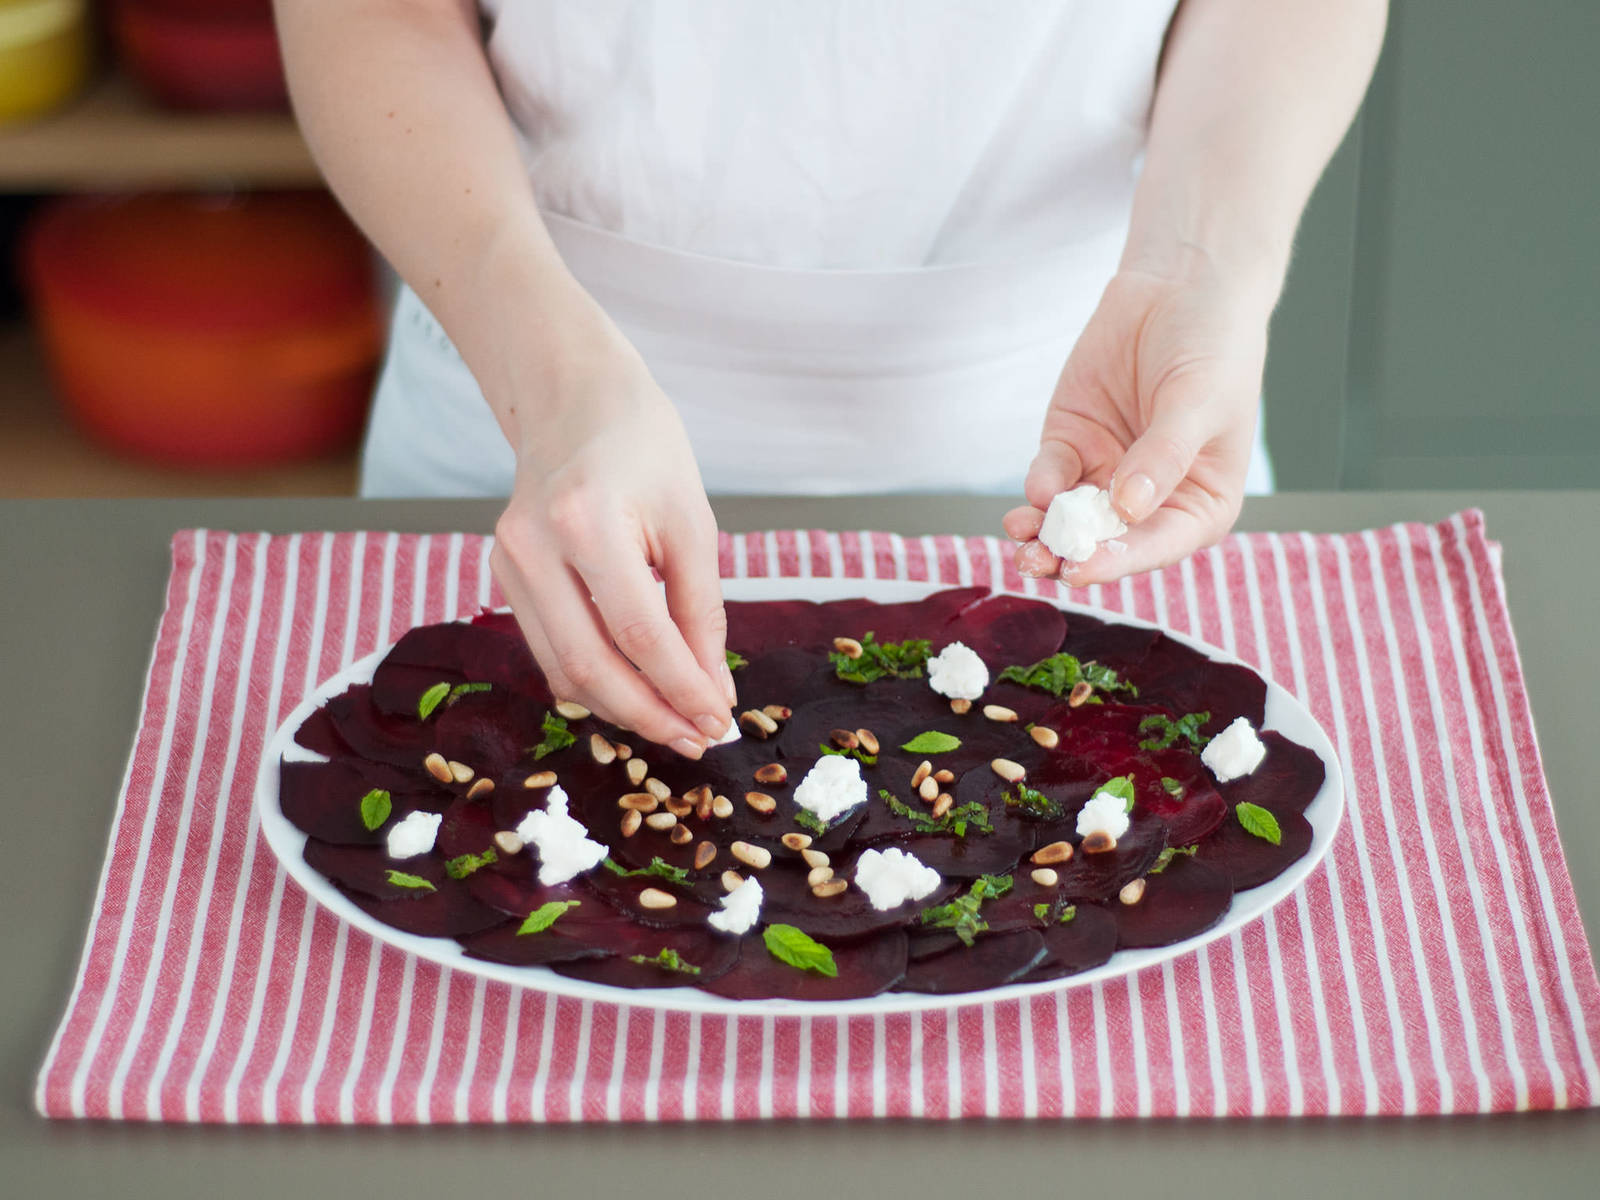 Arrange beets in an even layer on a plate. Pour vinaigrette over beets, add salt and pepper to taste, and garnish with pine nuts, goat cheese, and remaining mint leaves. Enjoy!